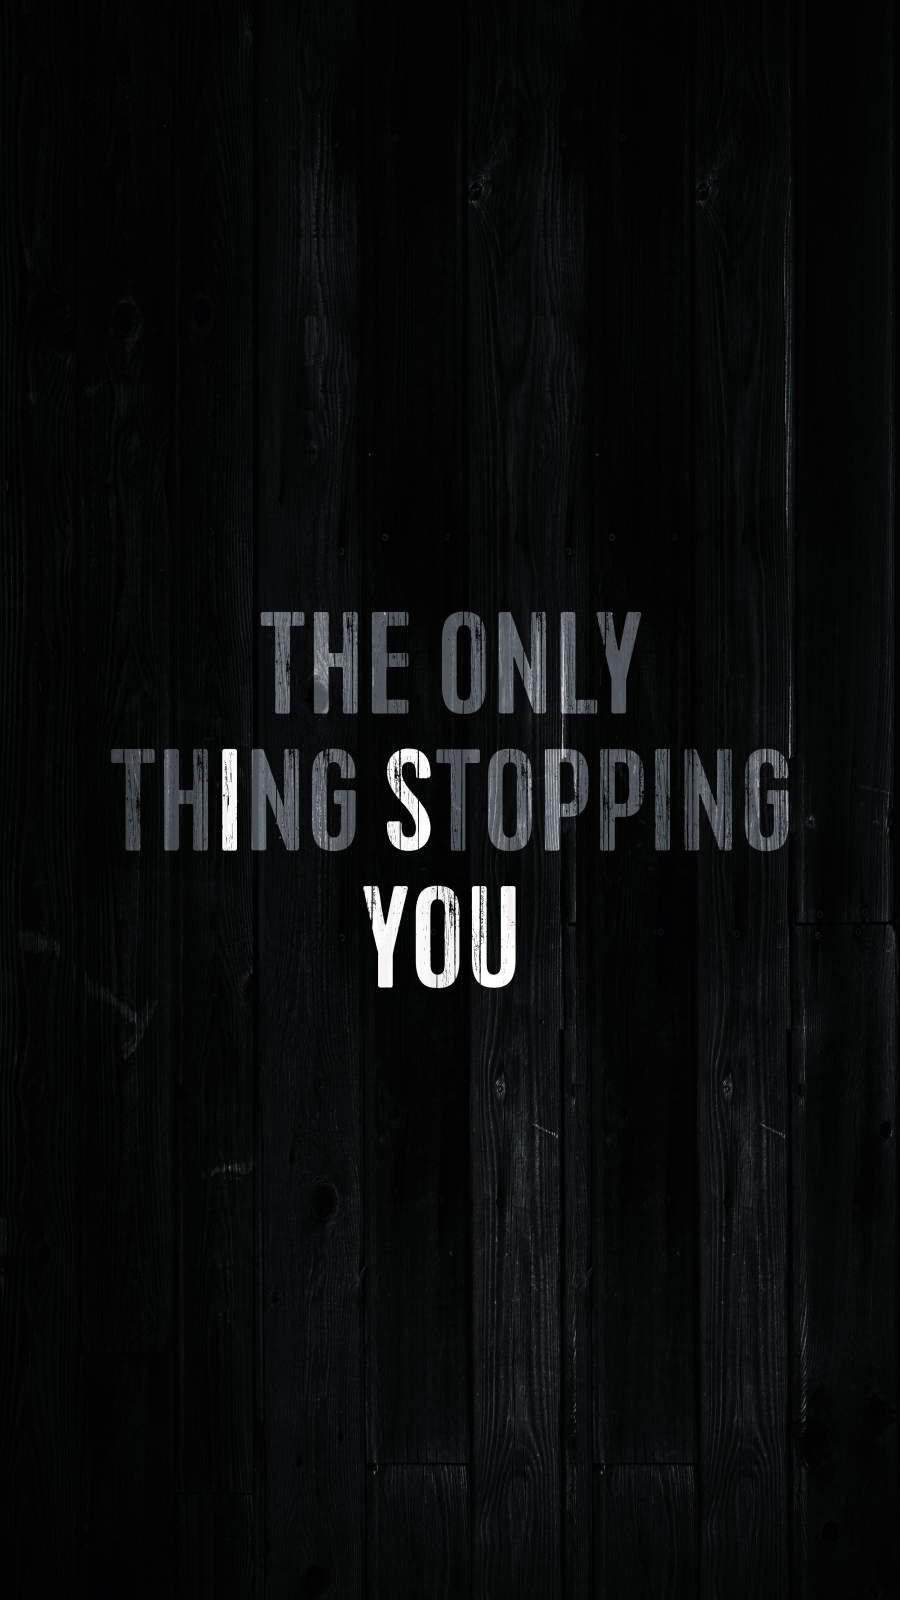 The Only Thing Stopping is You